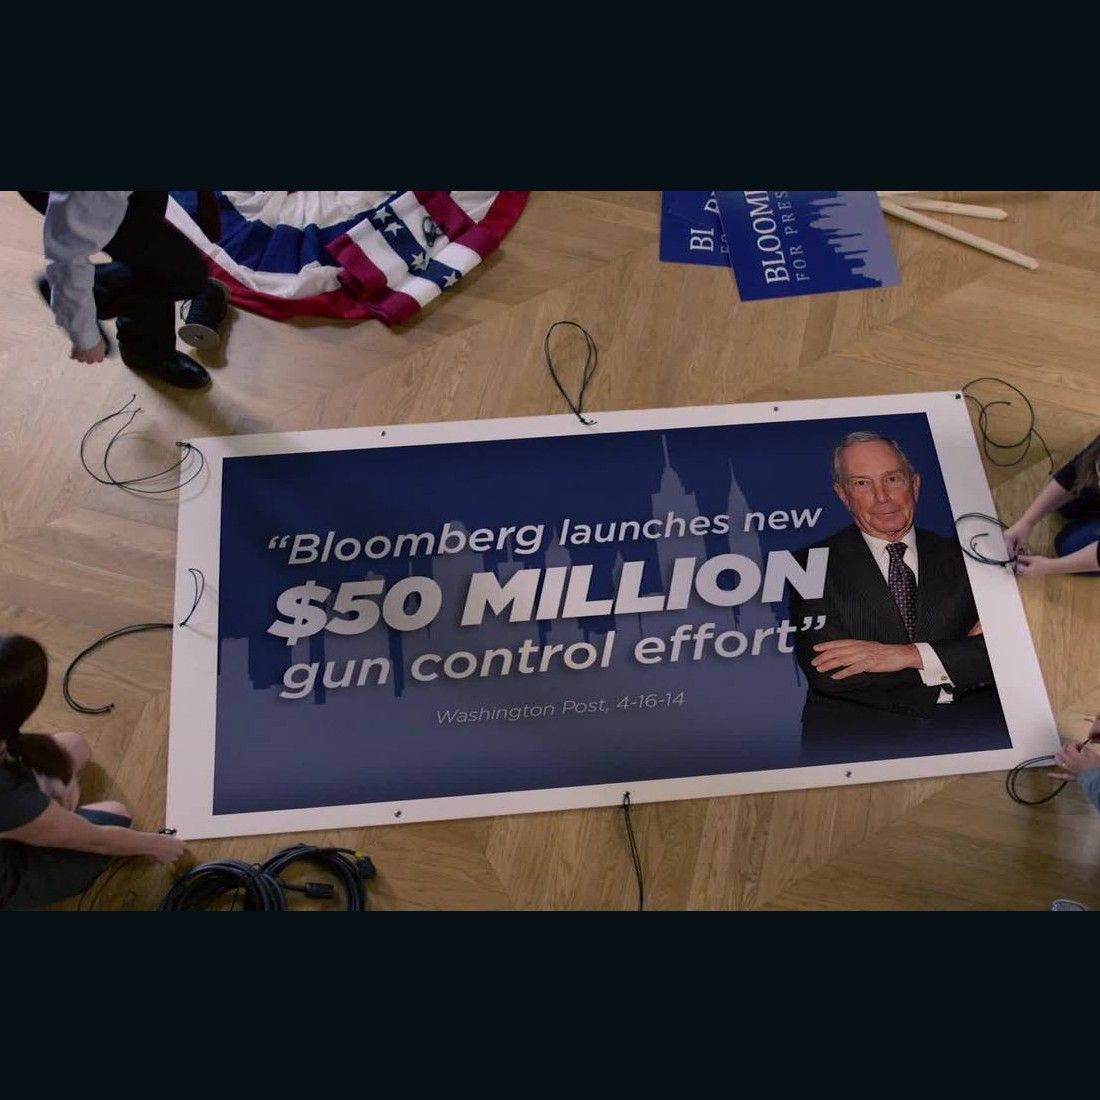 NRA ad targets Bloomberg The National Rifle Association launched a